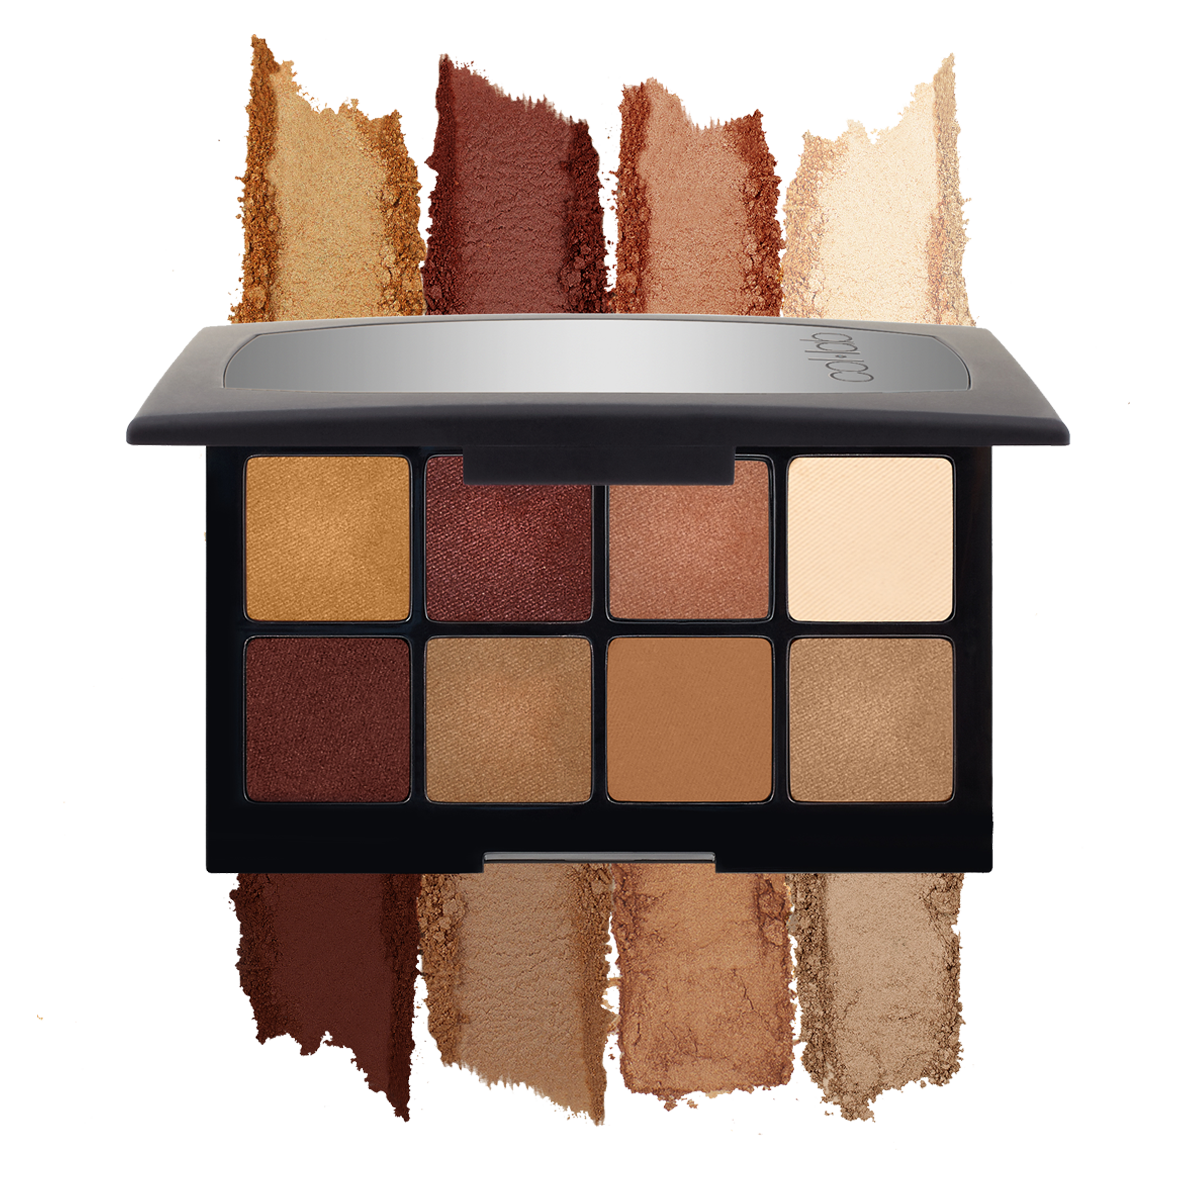 collab-palette-pro-getreadywithme-shade.png